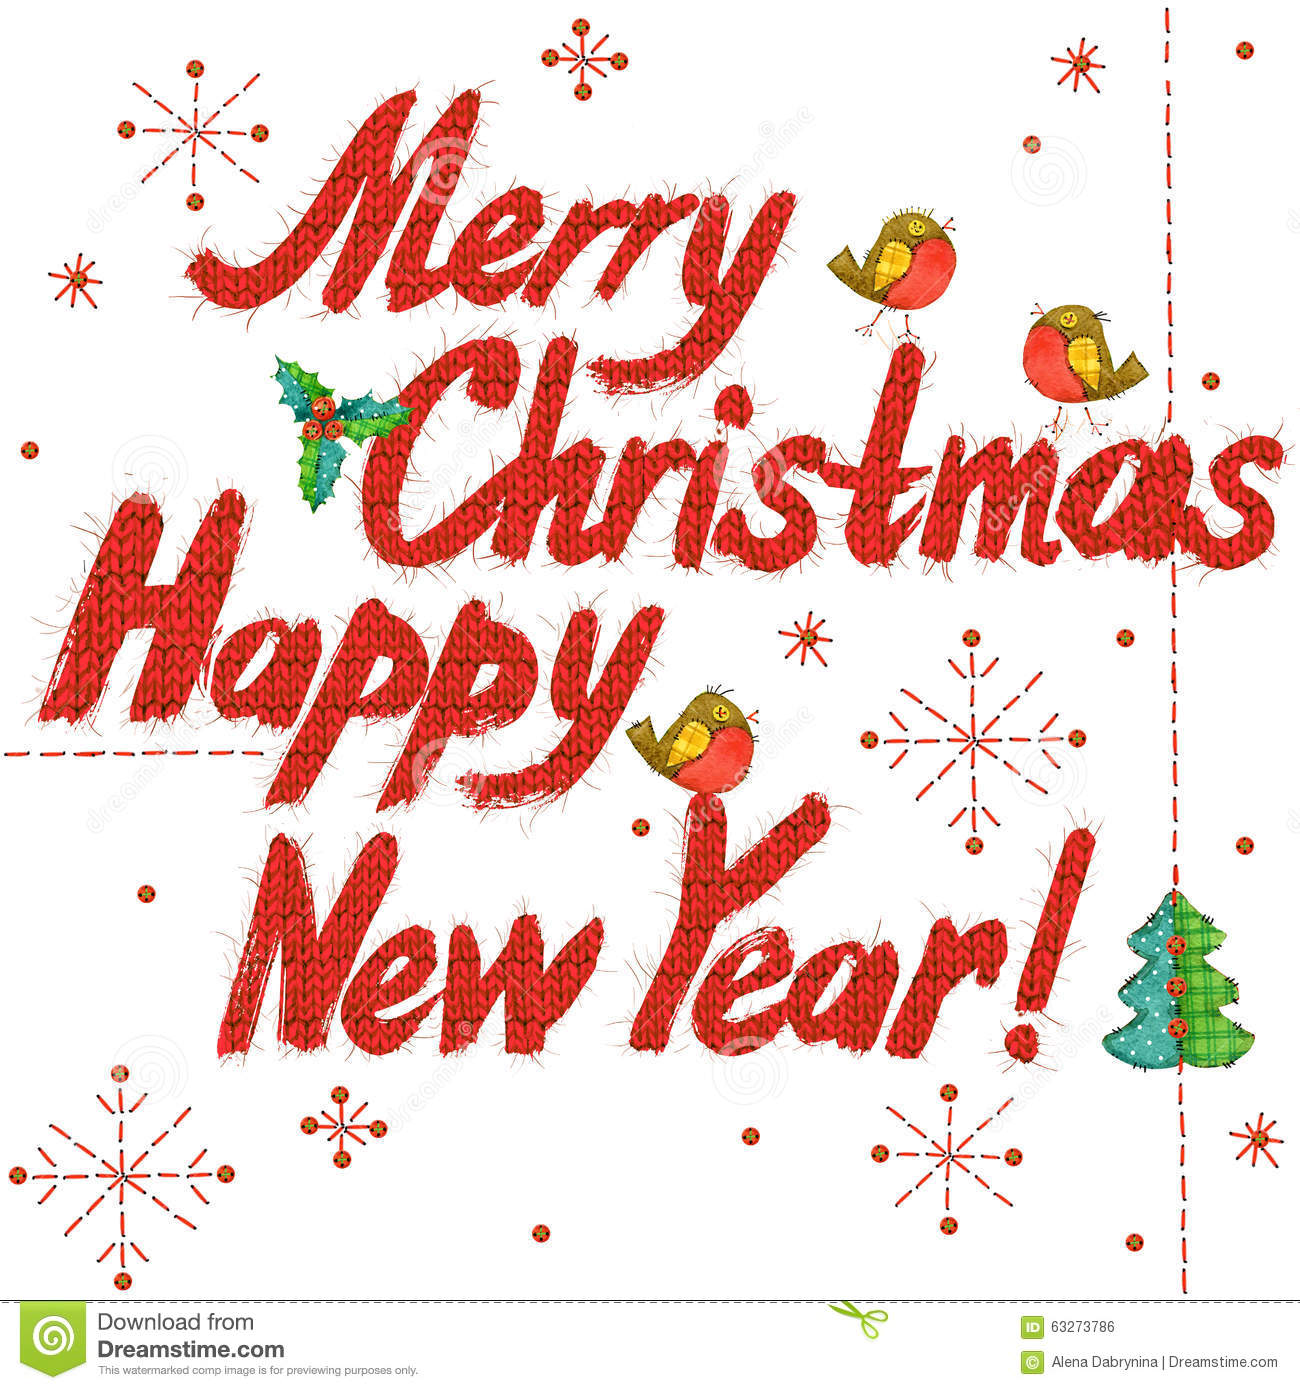 merry christmas and happy new year text hand drawn text watercolor christmas and new year background wish merry christmas and new year